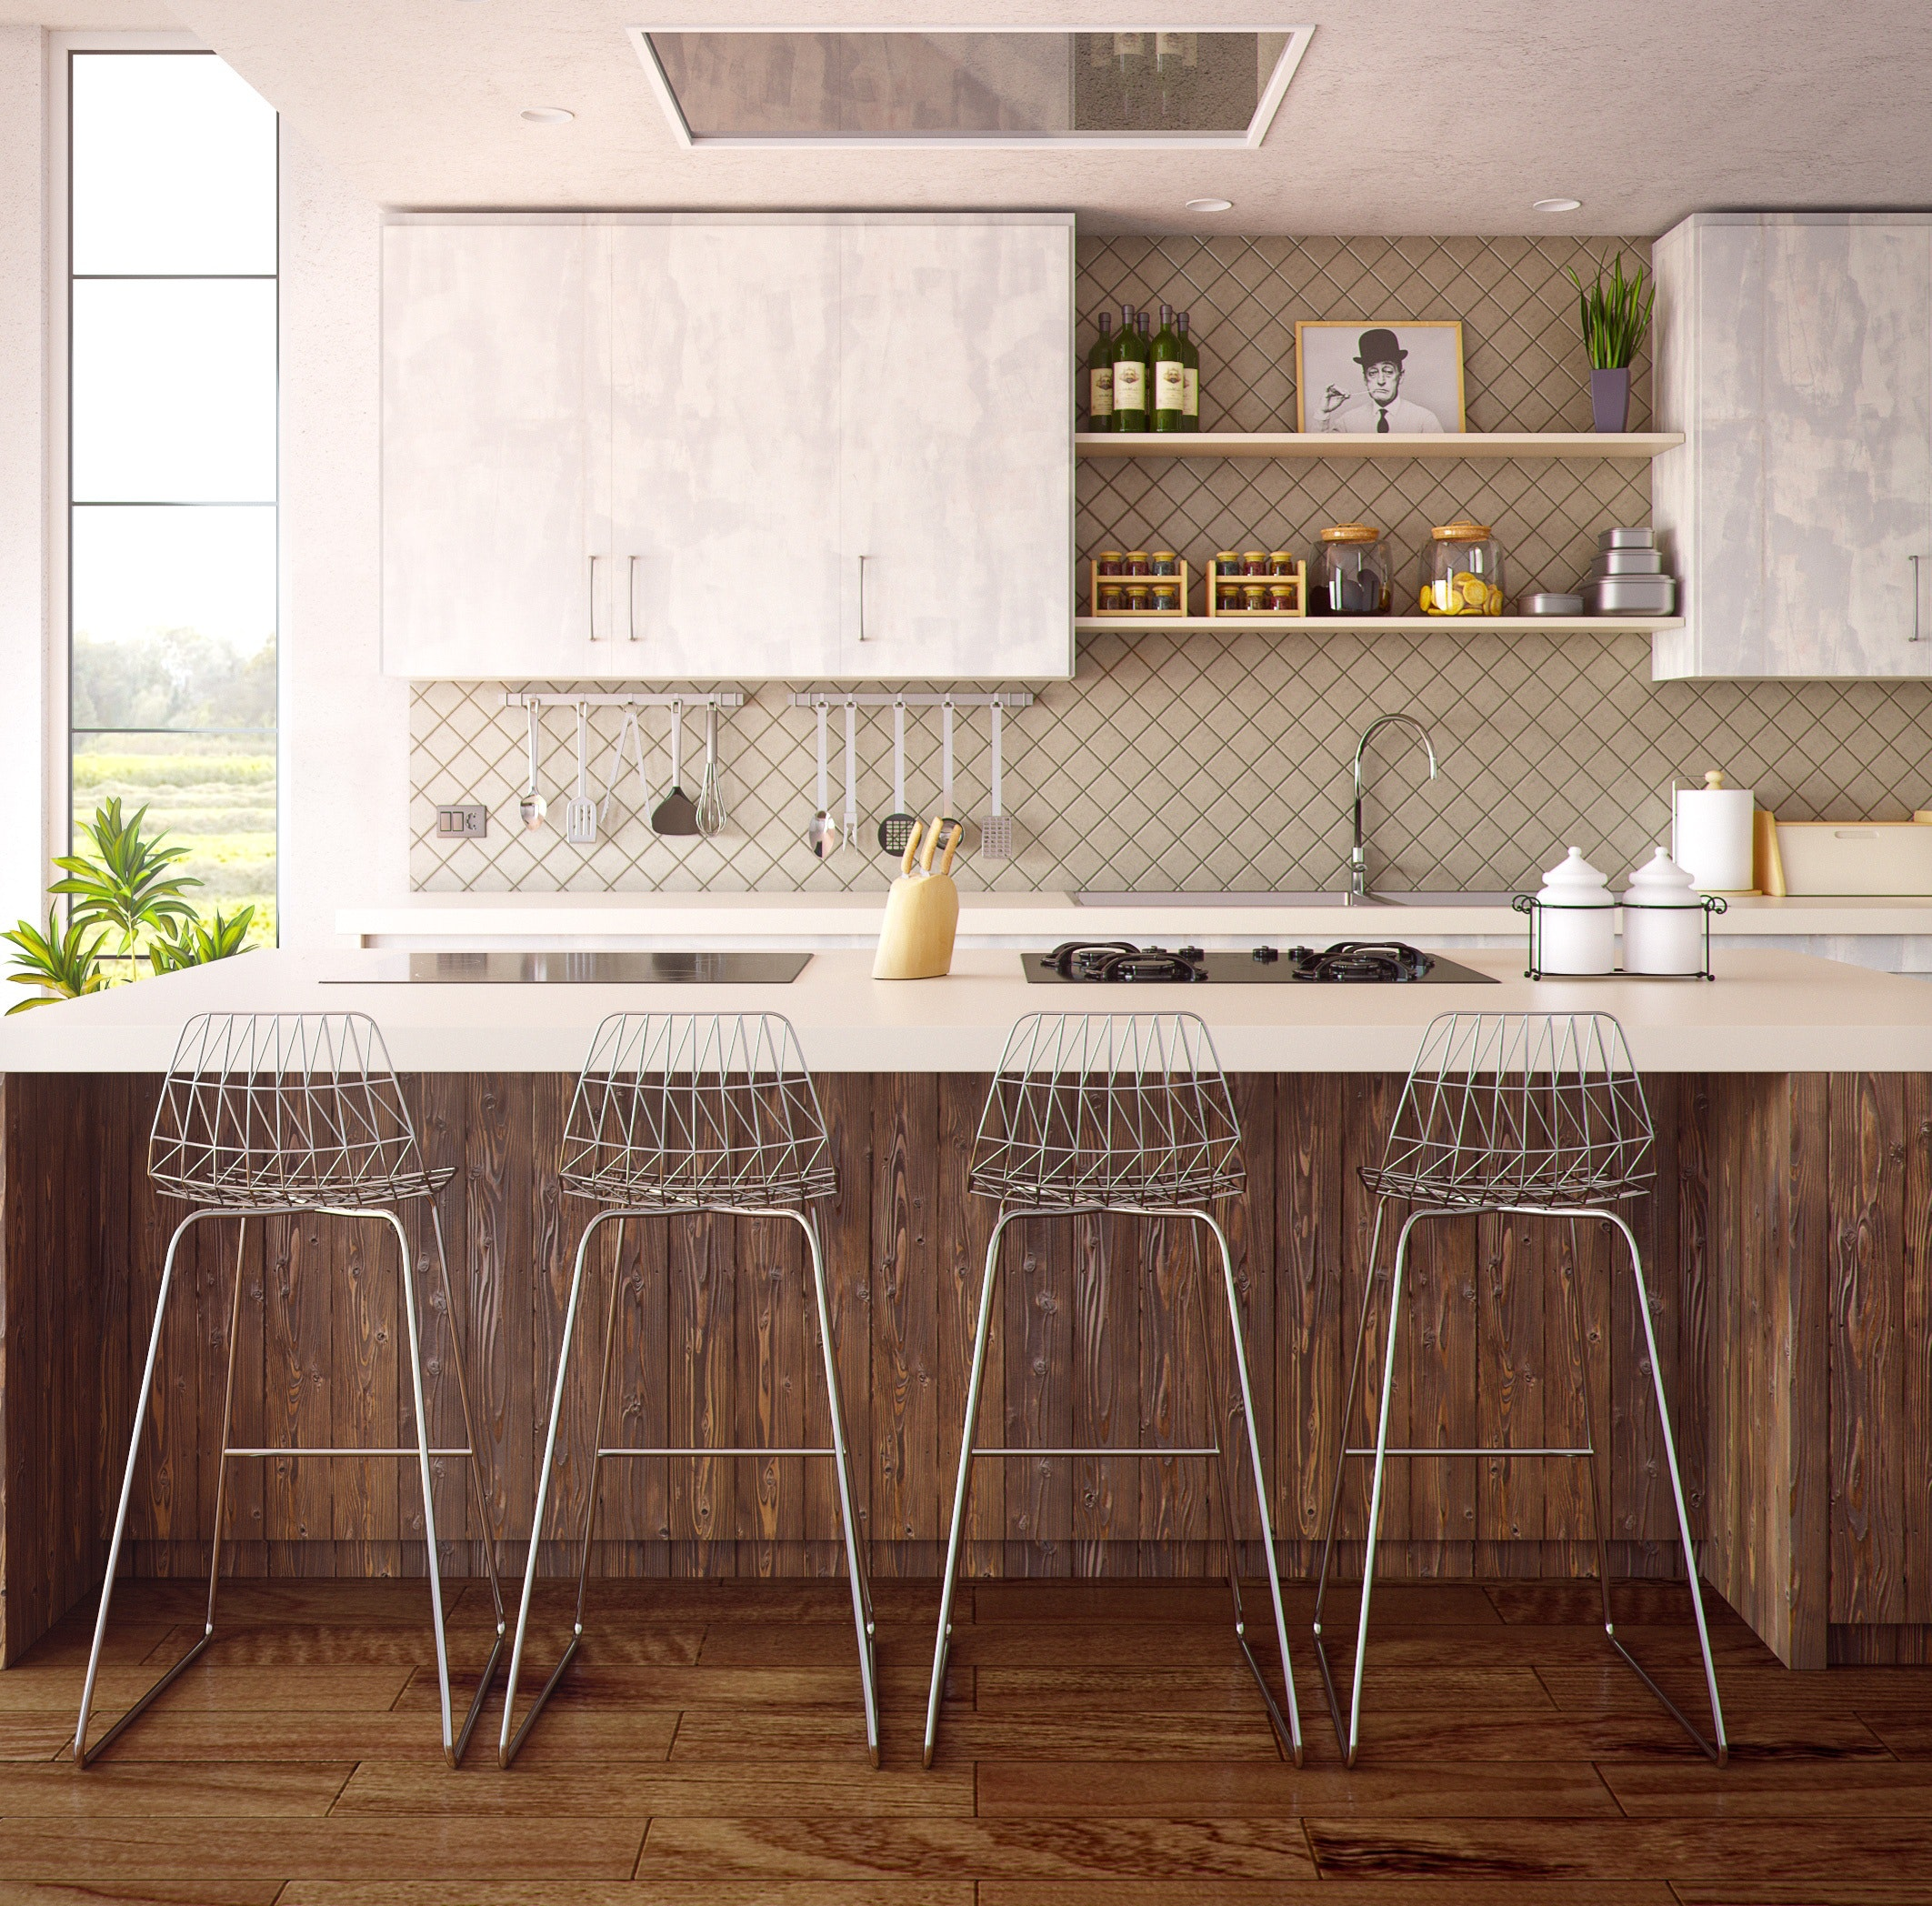 New Kitchen Design Trends in 2020